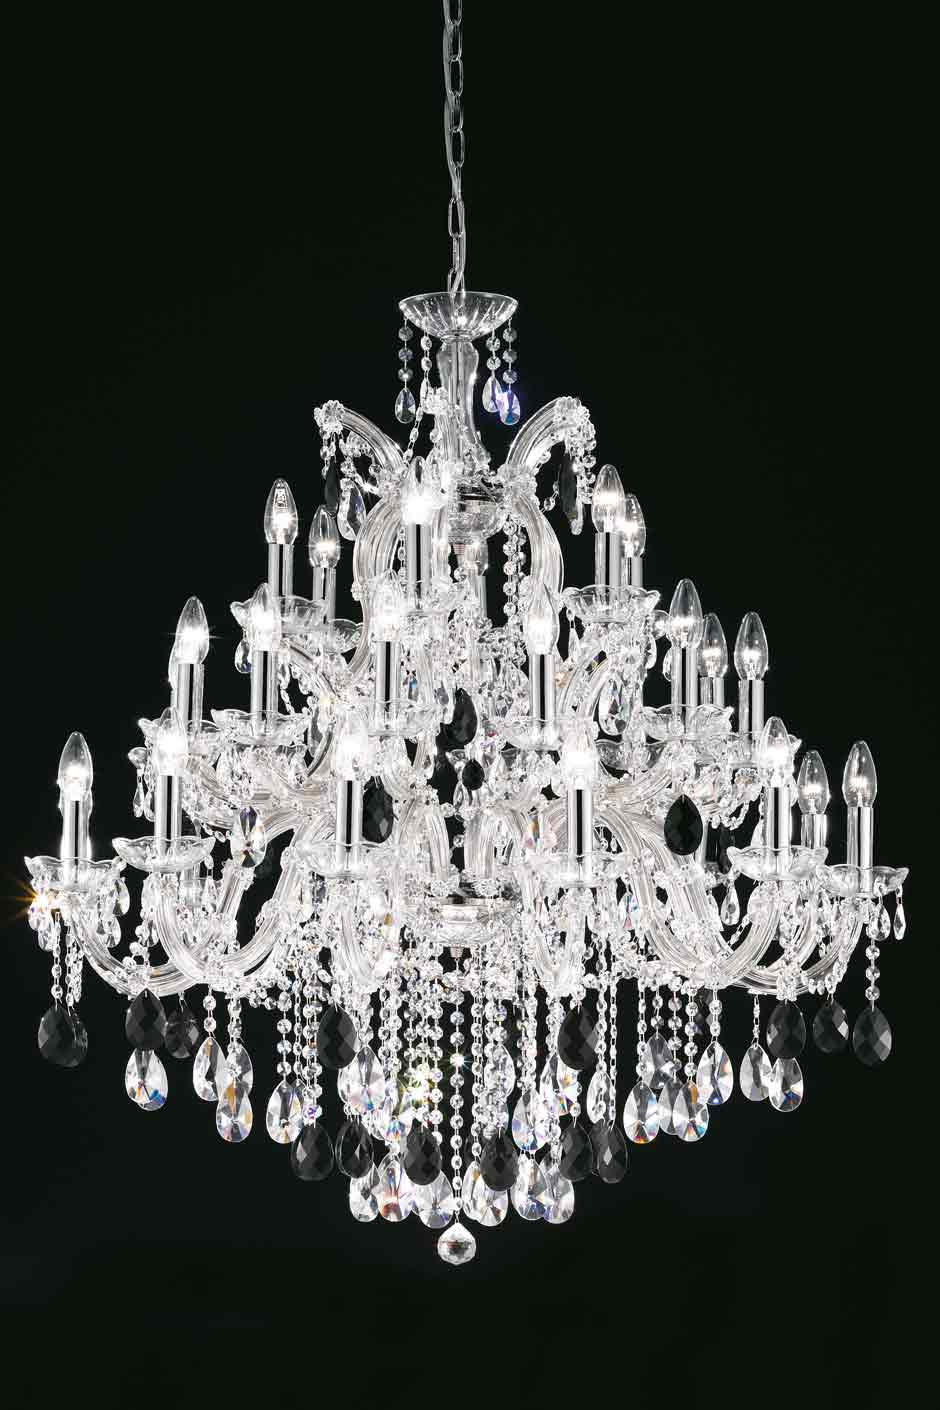 Clear Crystal Chandelier With Drops